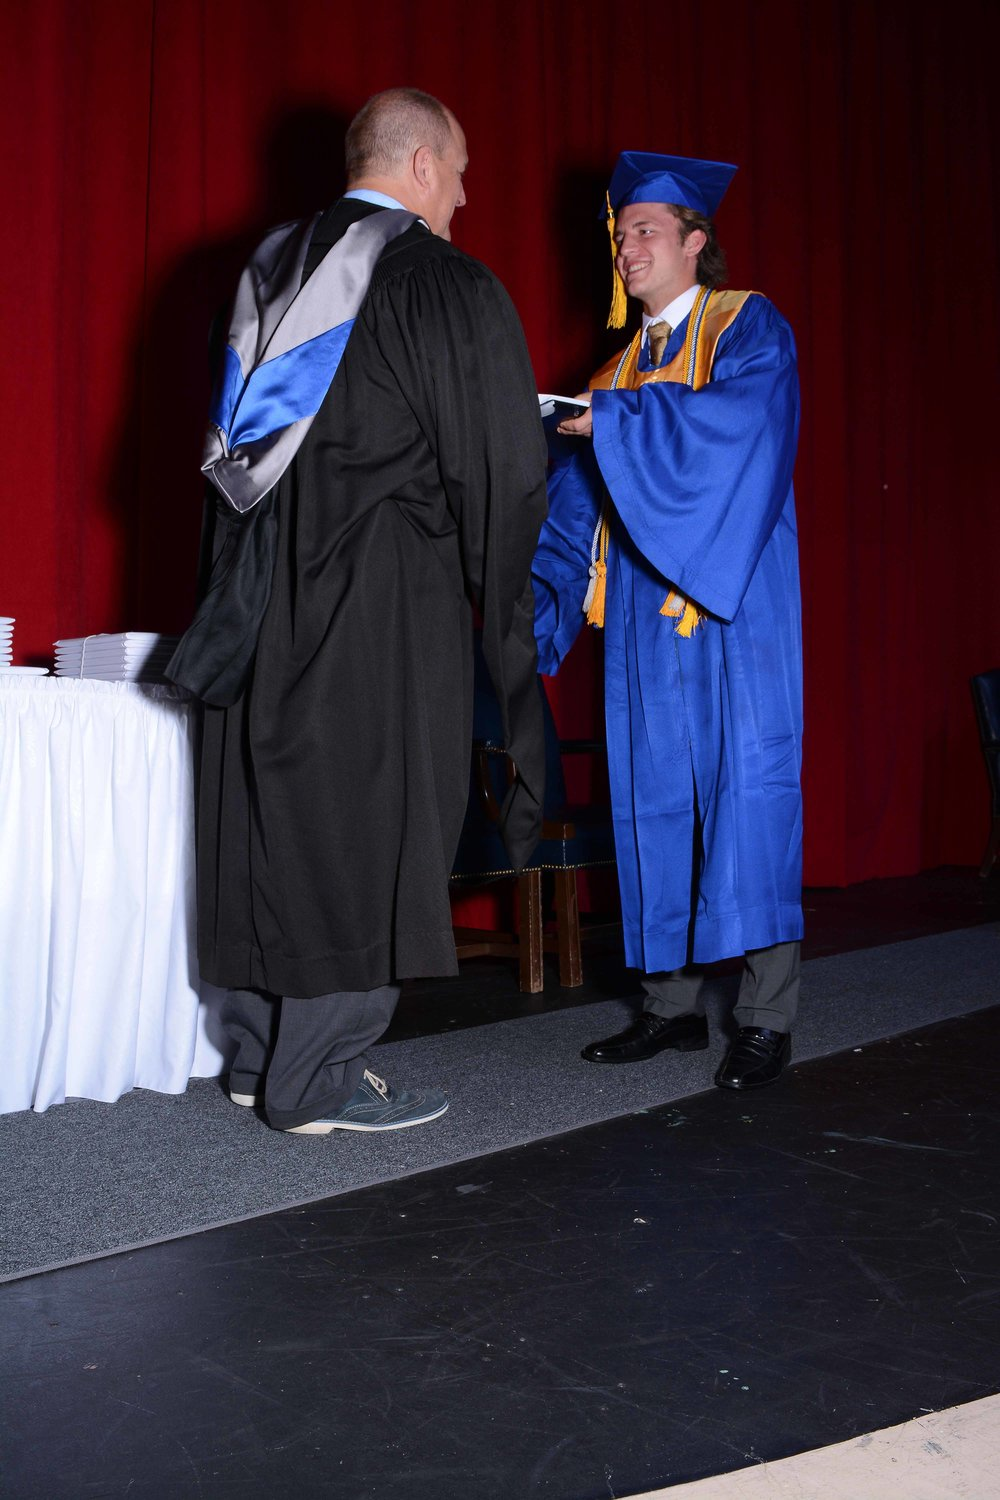 May14 Commencement141.jpg